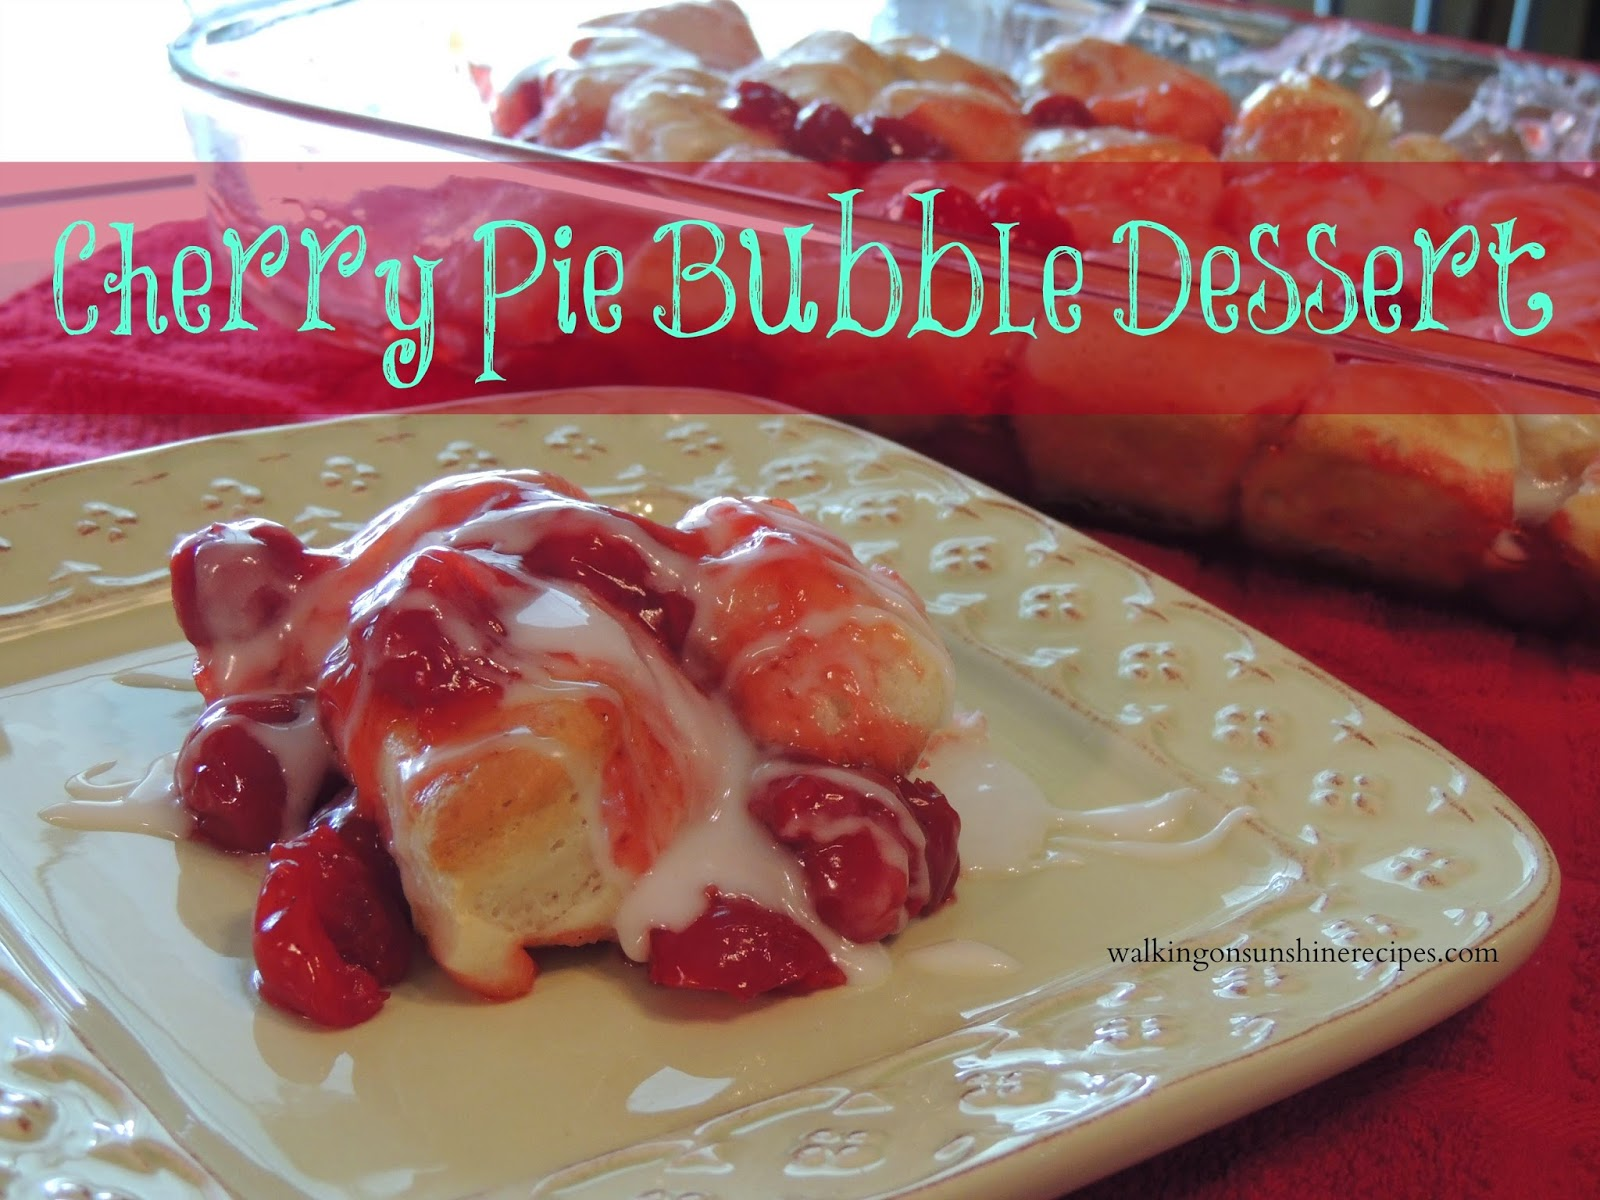 Cherry Pie Bubble Dessert - Walking on Sunshine